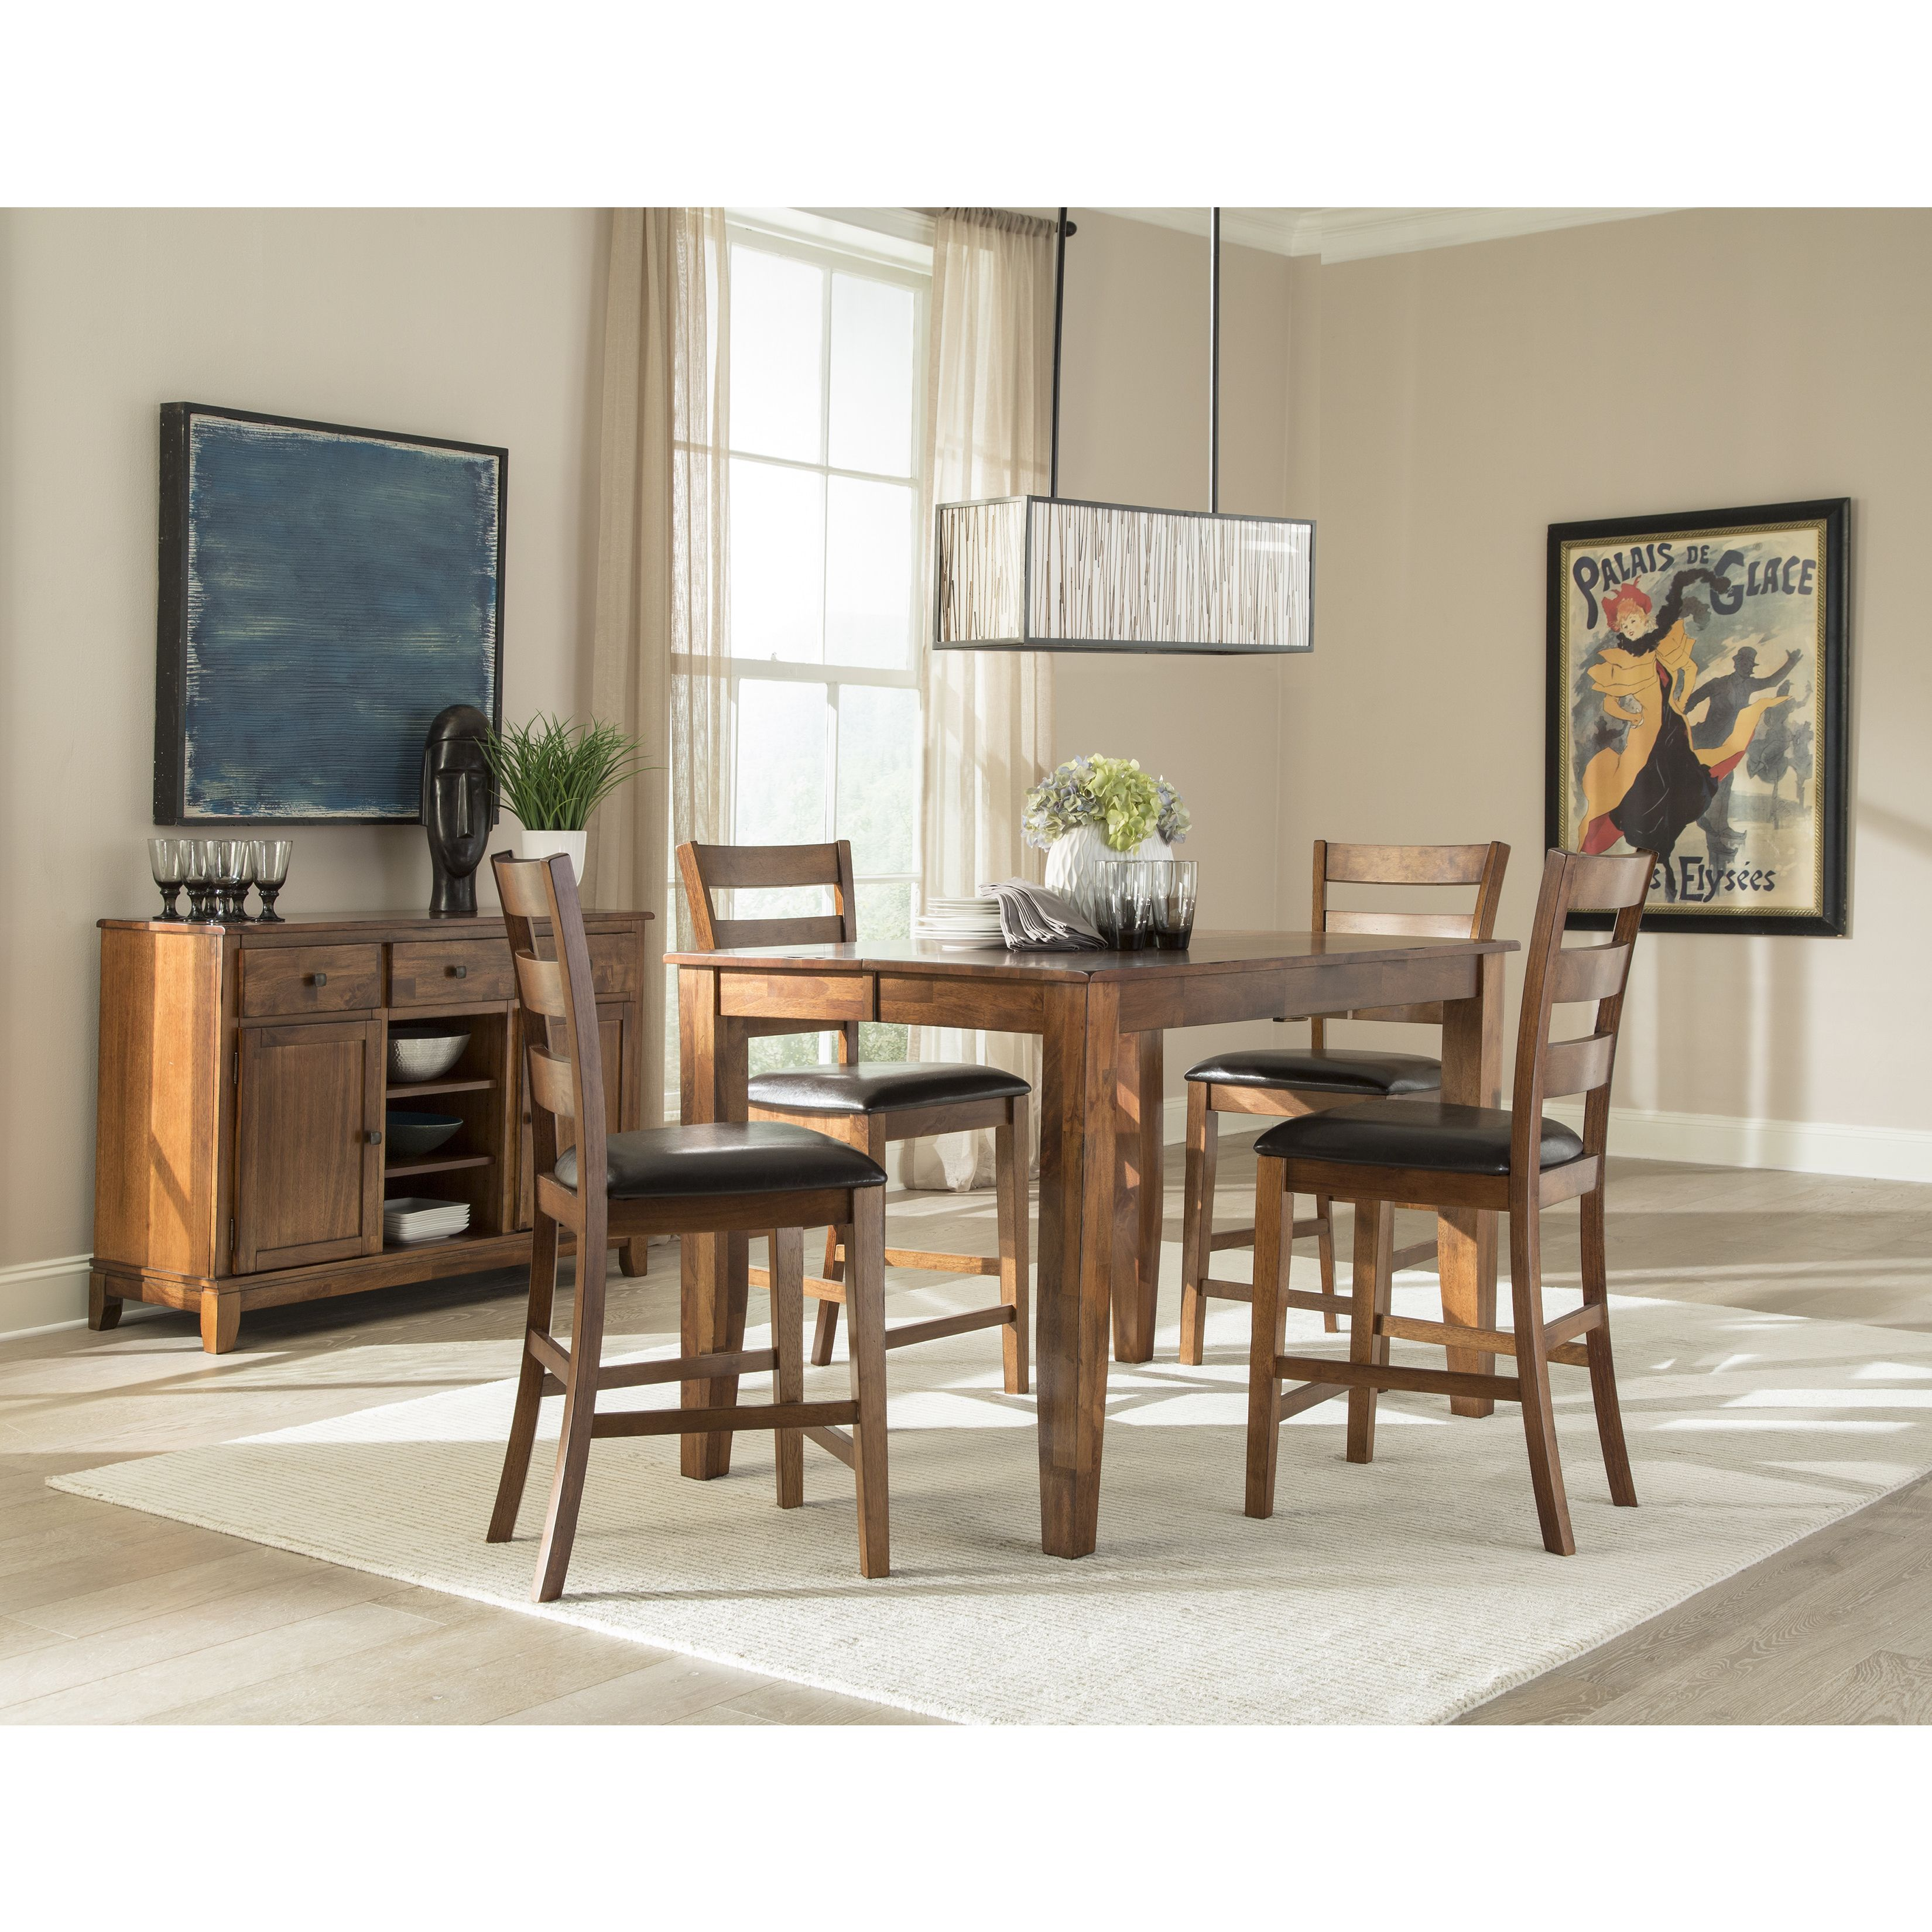 Swell Kona Brandy 54X36 54X36 Gathering Table Brown Intercon Gmtry Best Dining Table And Chair Ideas Images Gmtryco